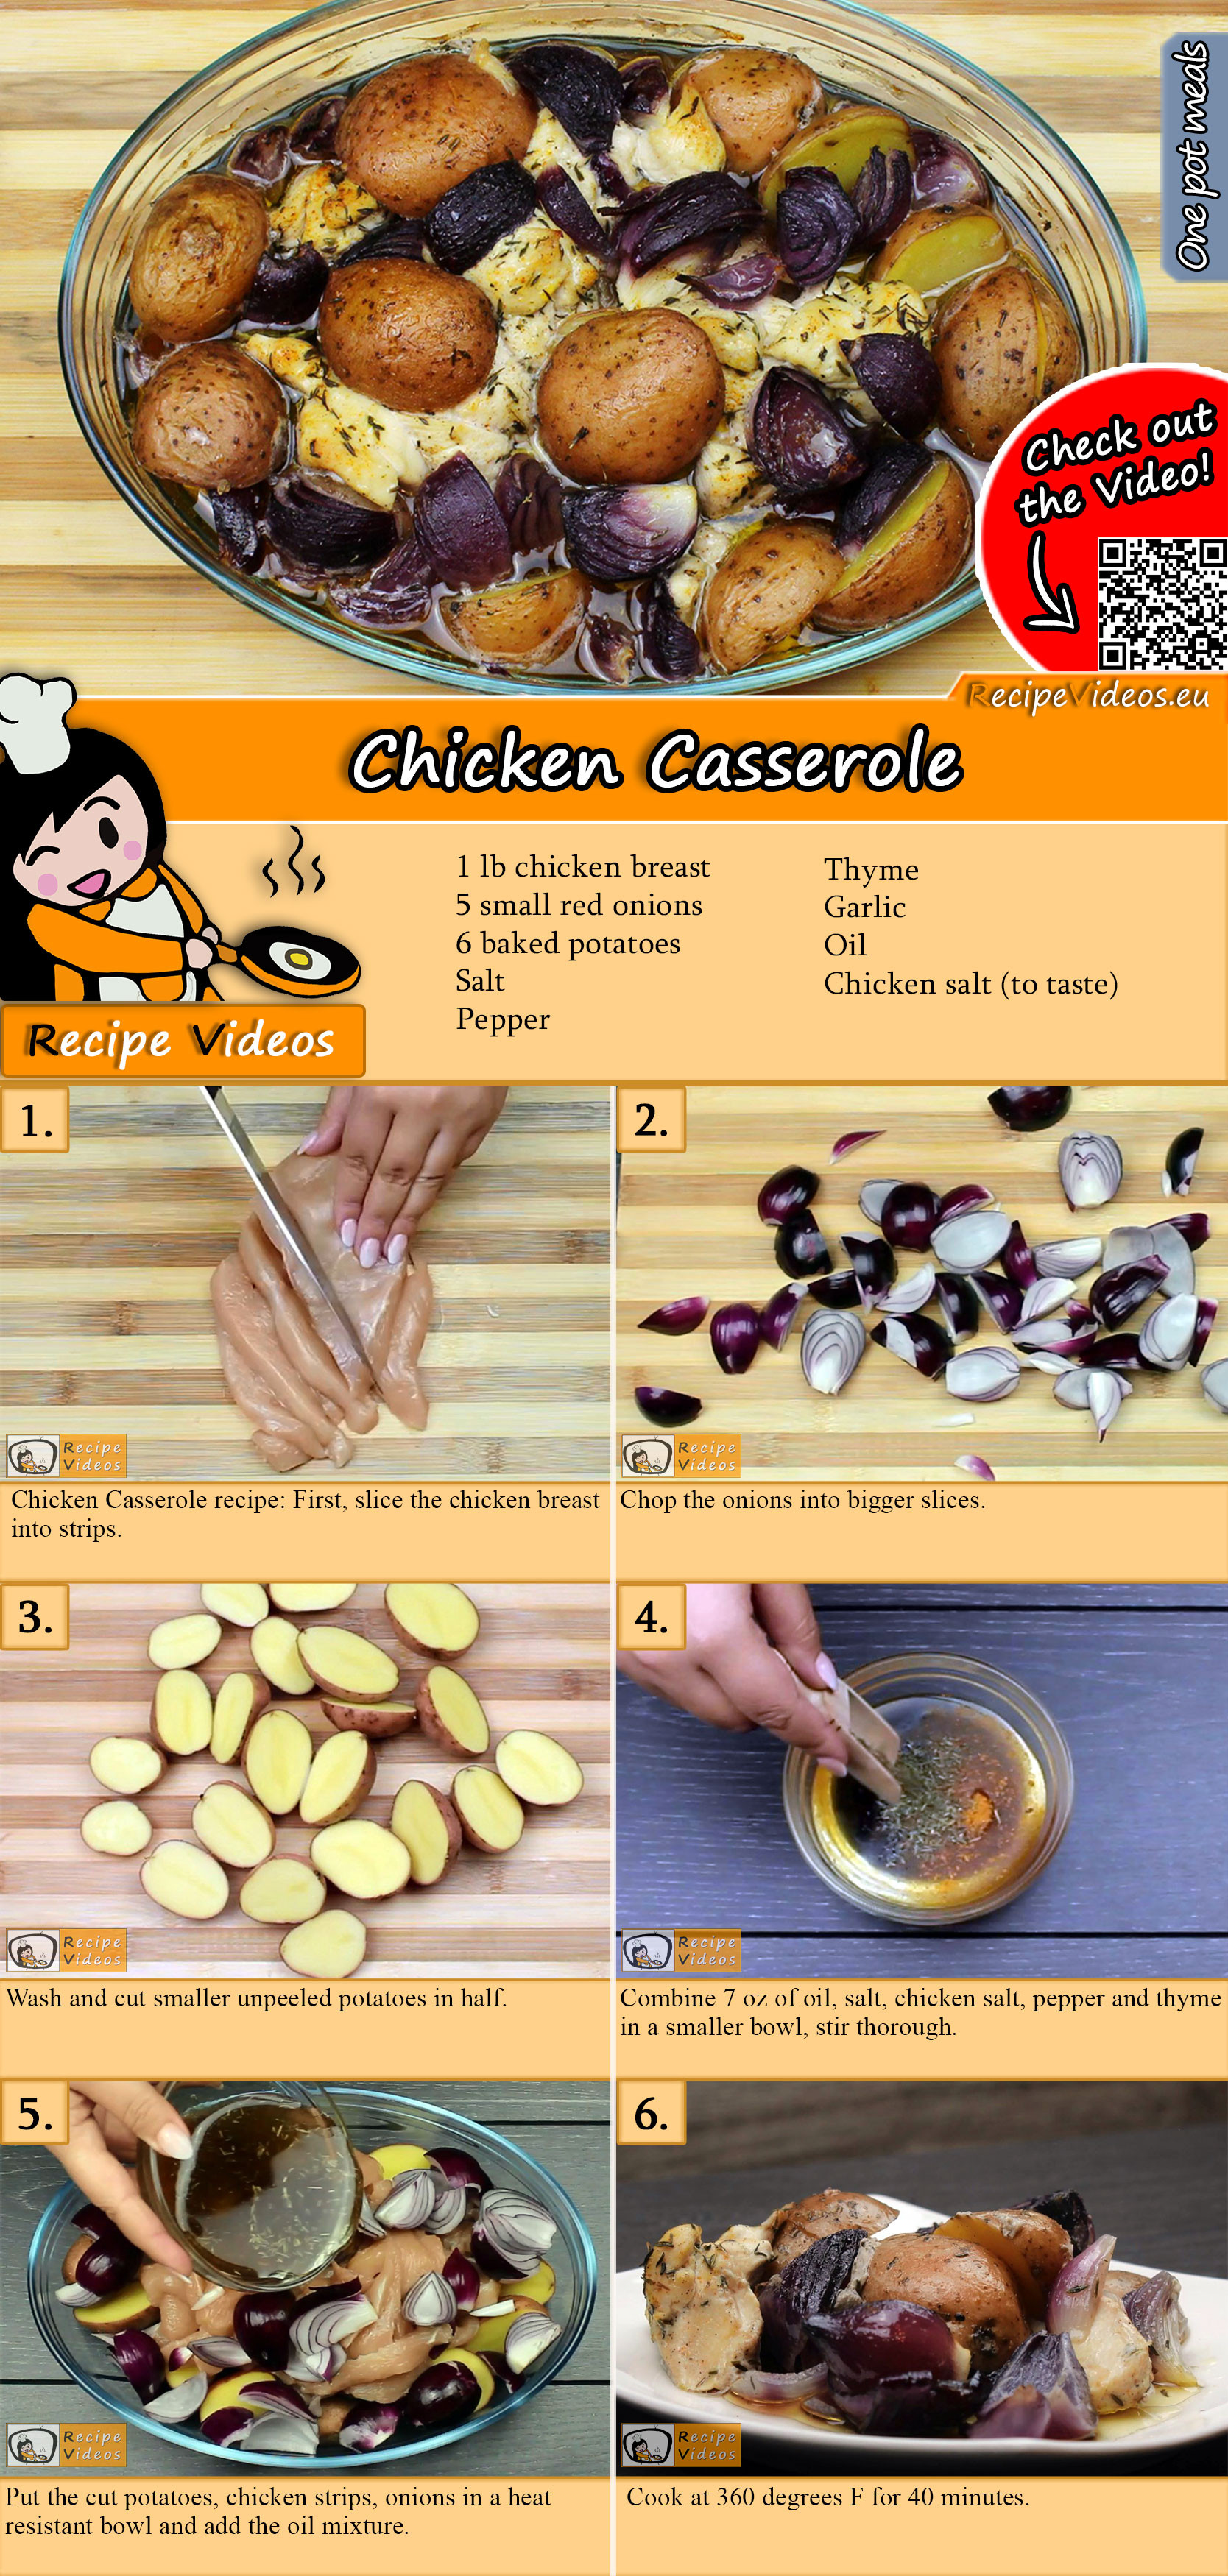 Chicken Casserole recipe with video